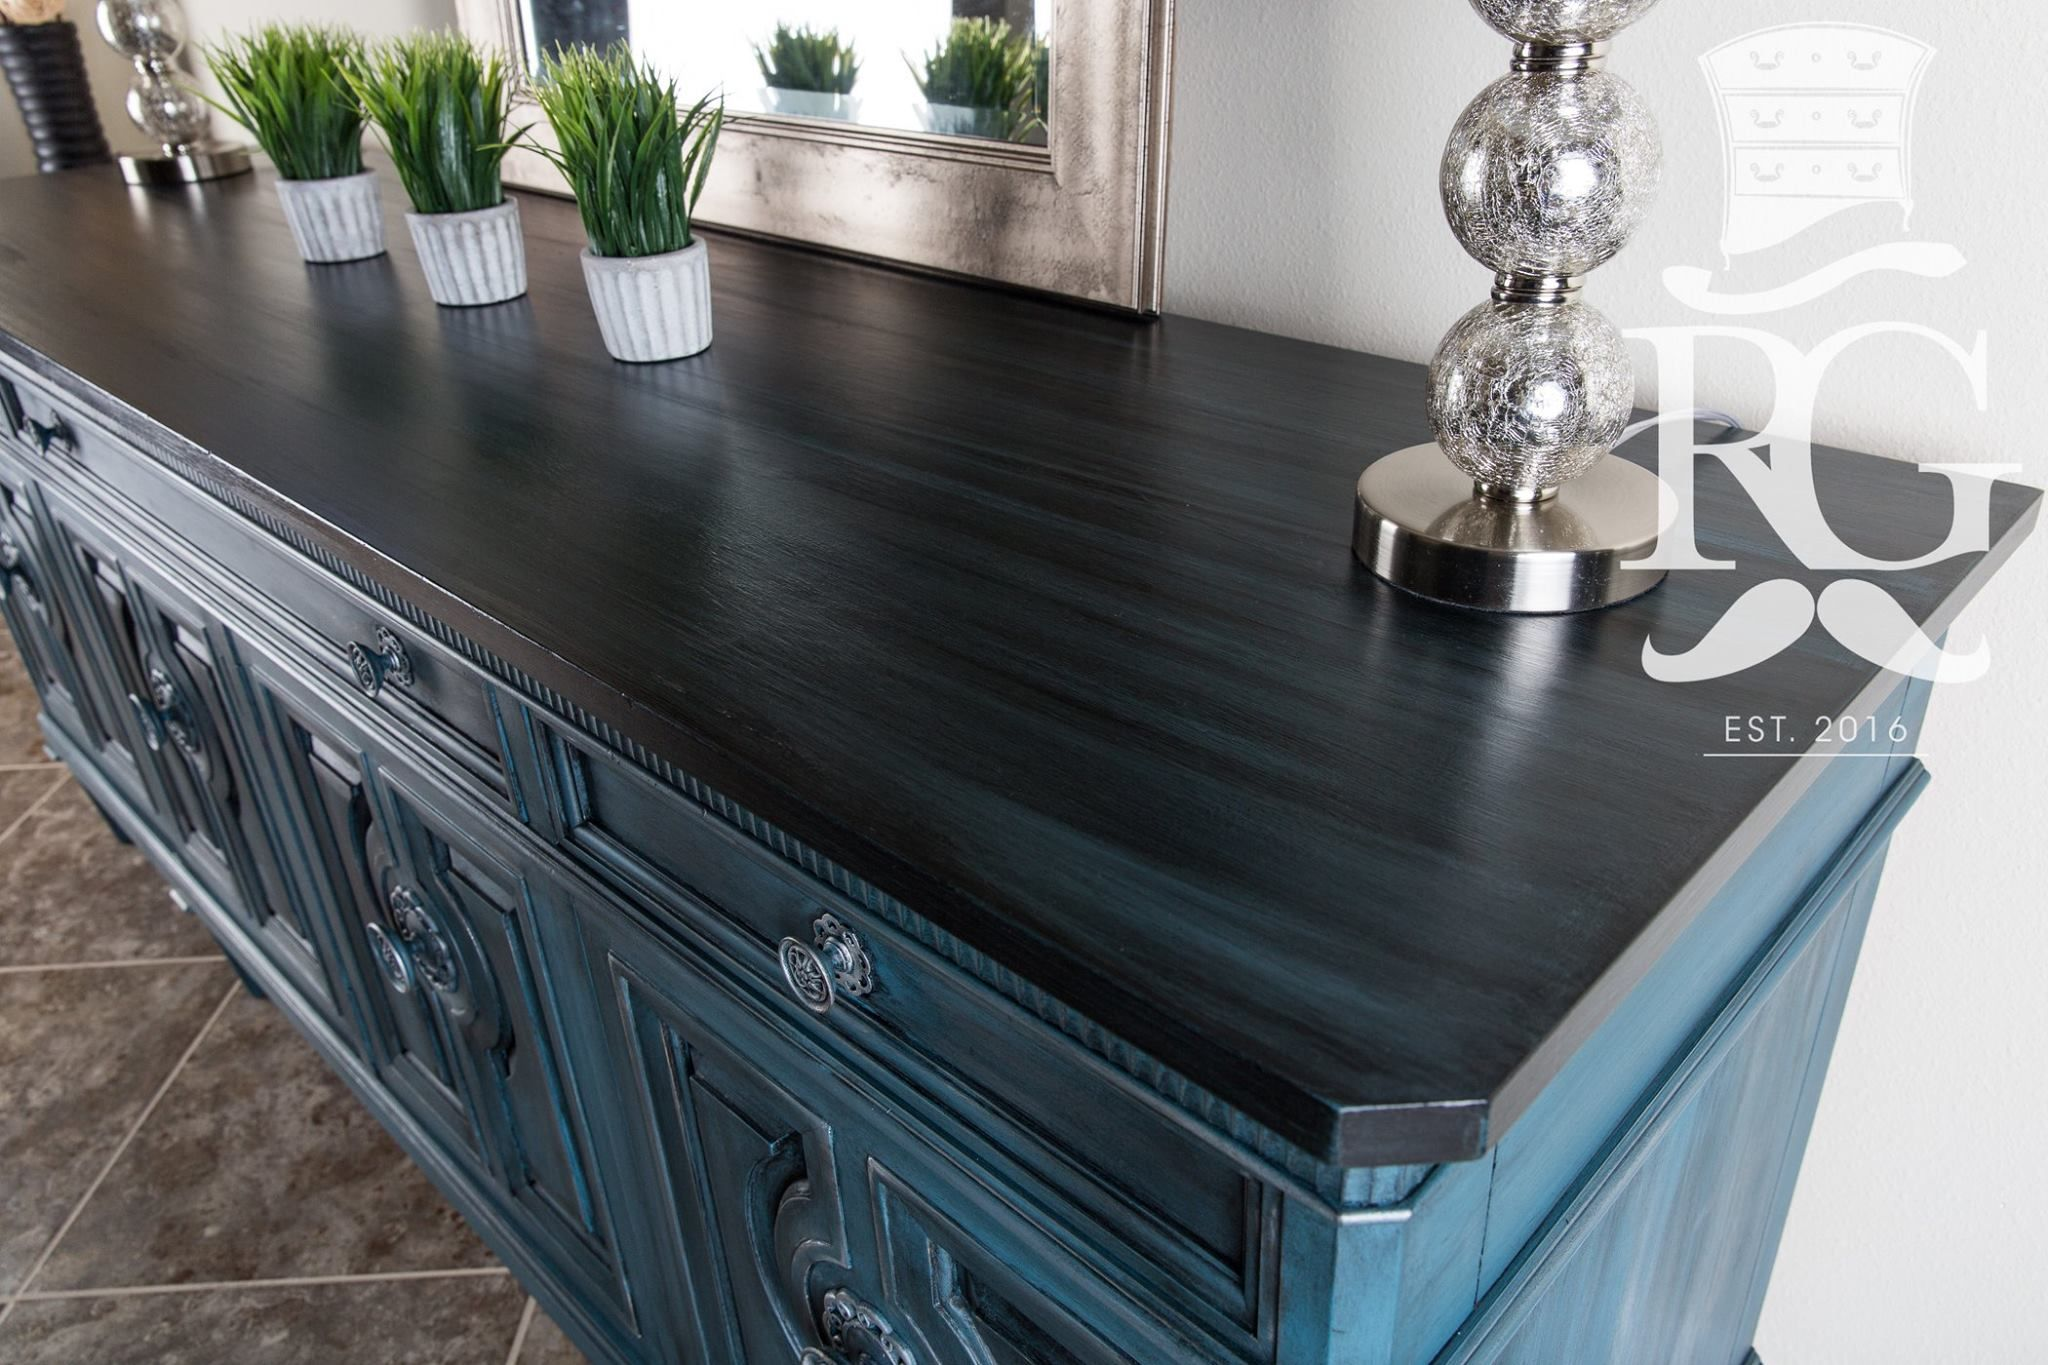 Credenza Buffet Top Painted In Annie Sloan Chalk Paint Aubusson Then Graphite Wash T Black Painted Furniture Diy Furniture Renovation Furniture Renovation